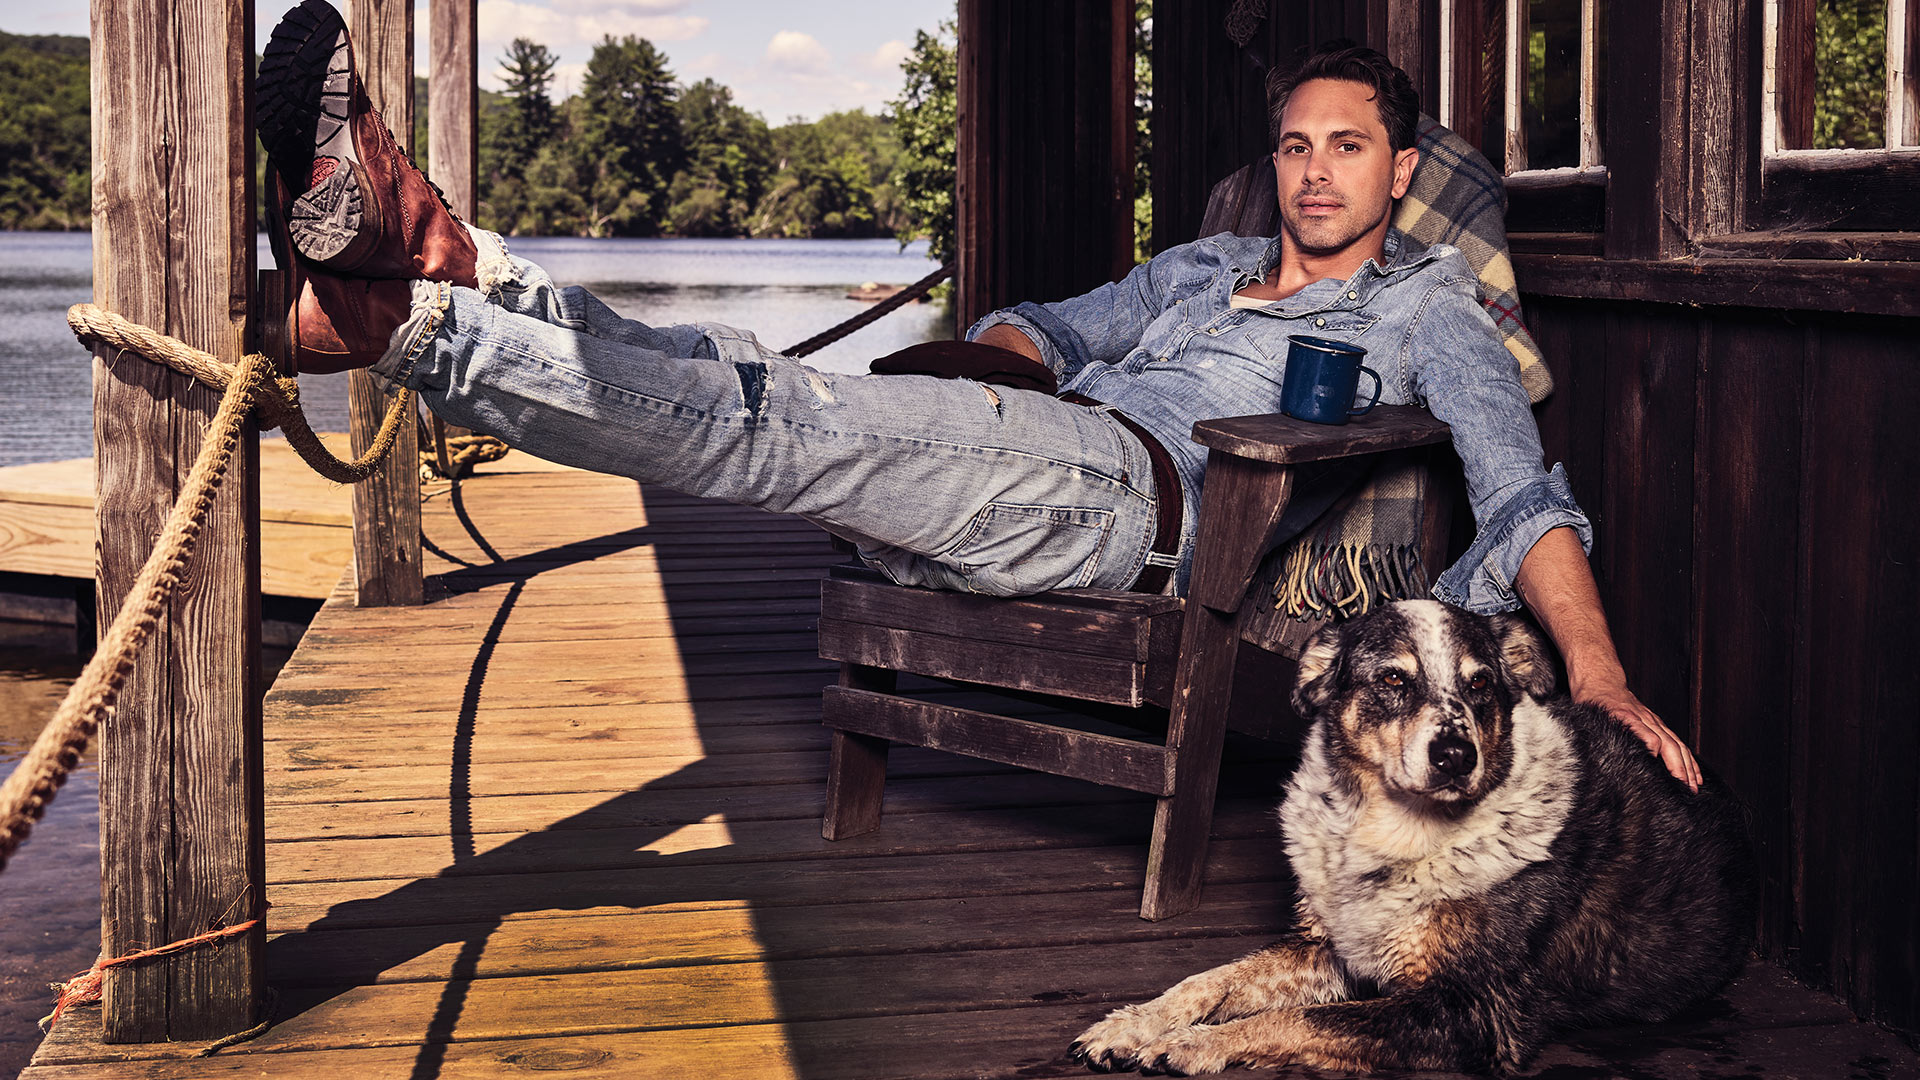 Thomas Sadoski, especially when he's all rugged good looks and country cool